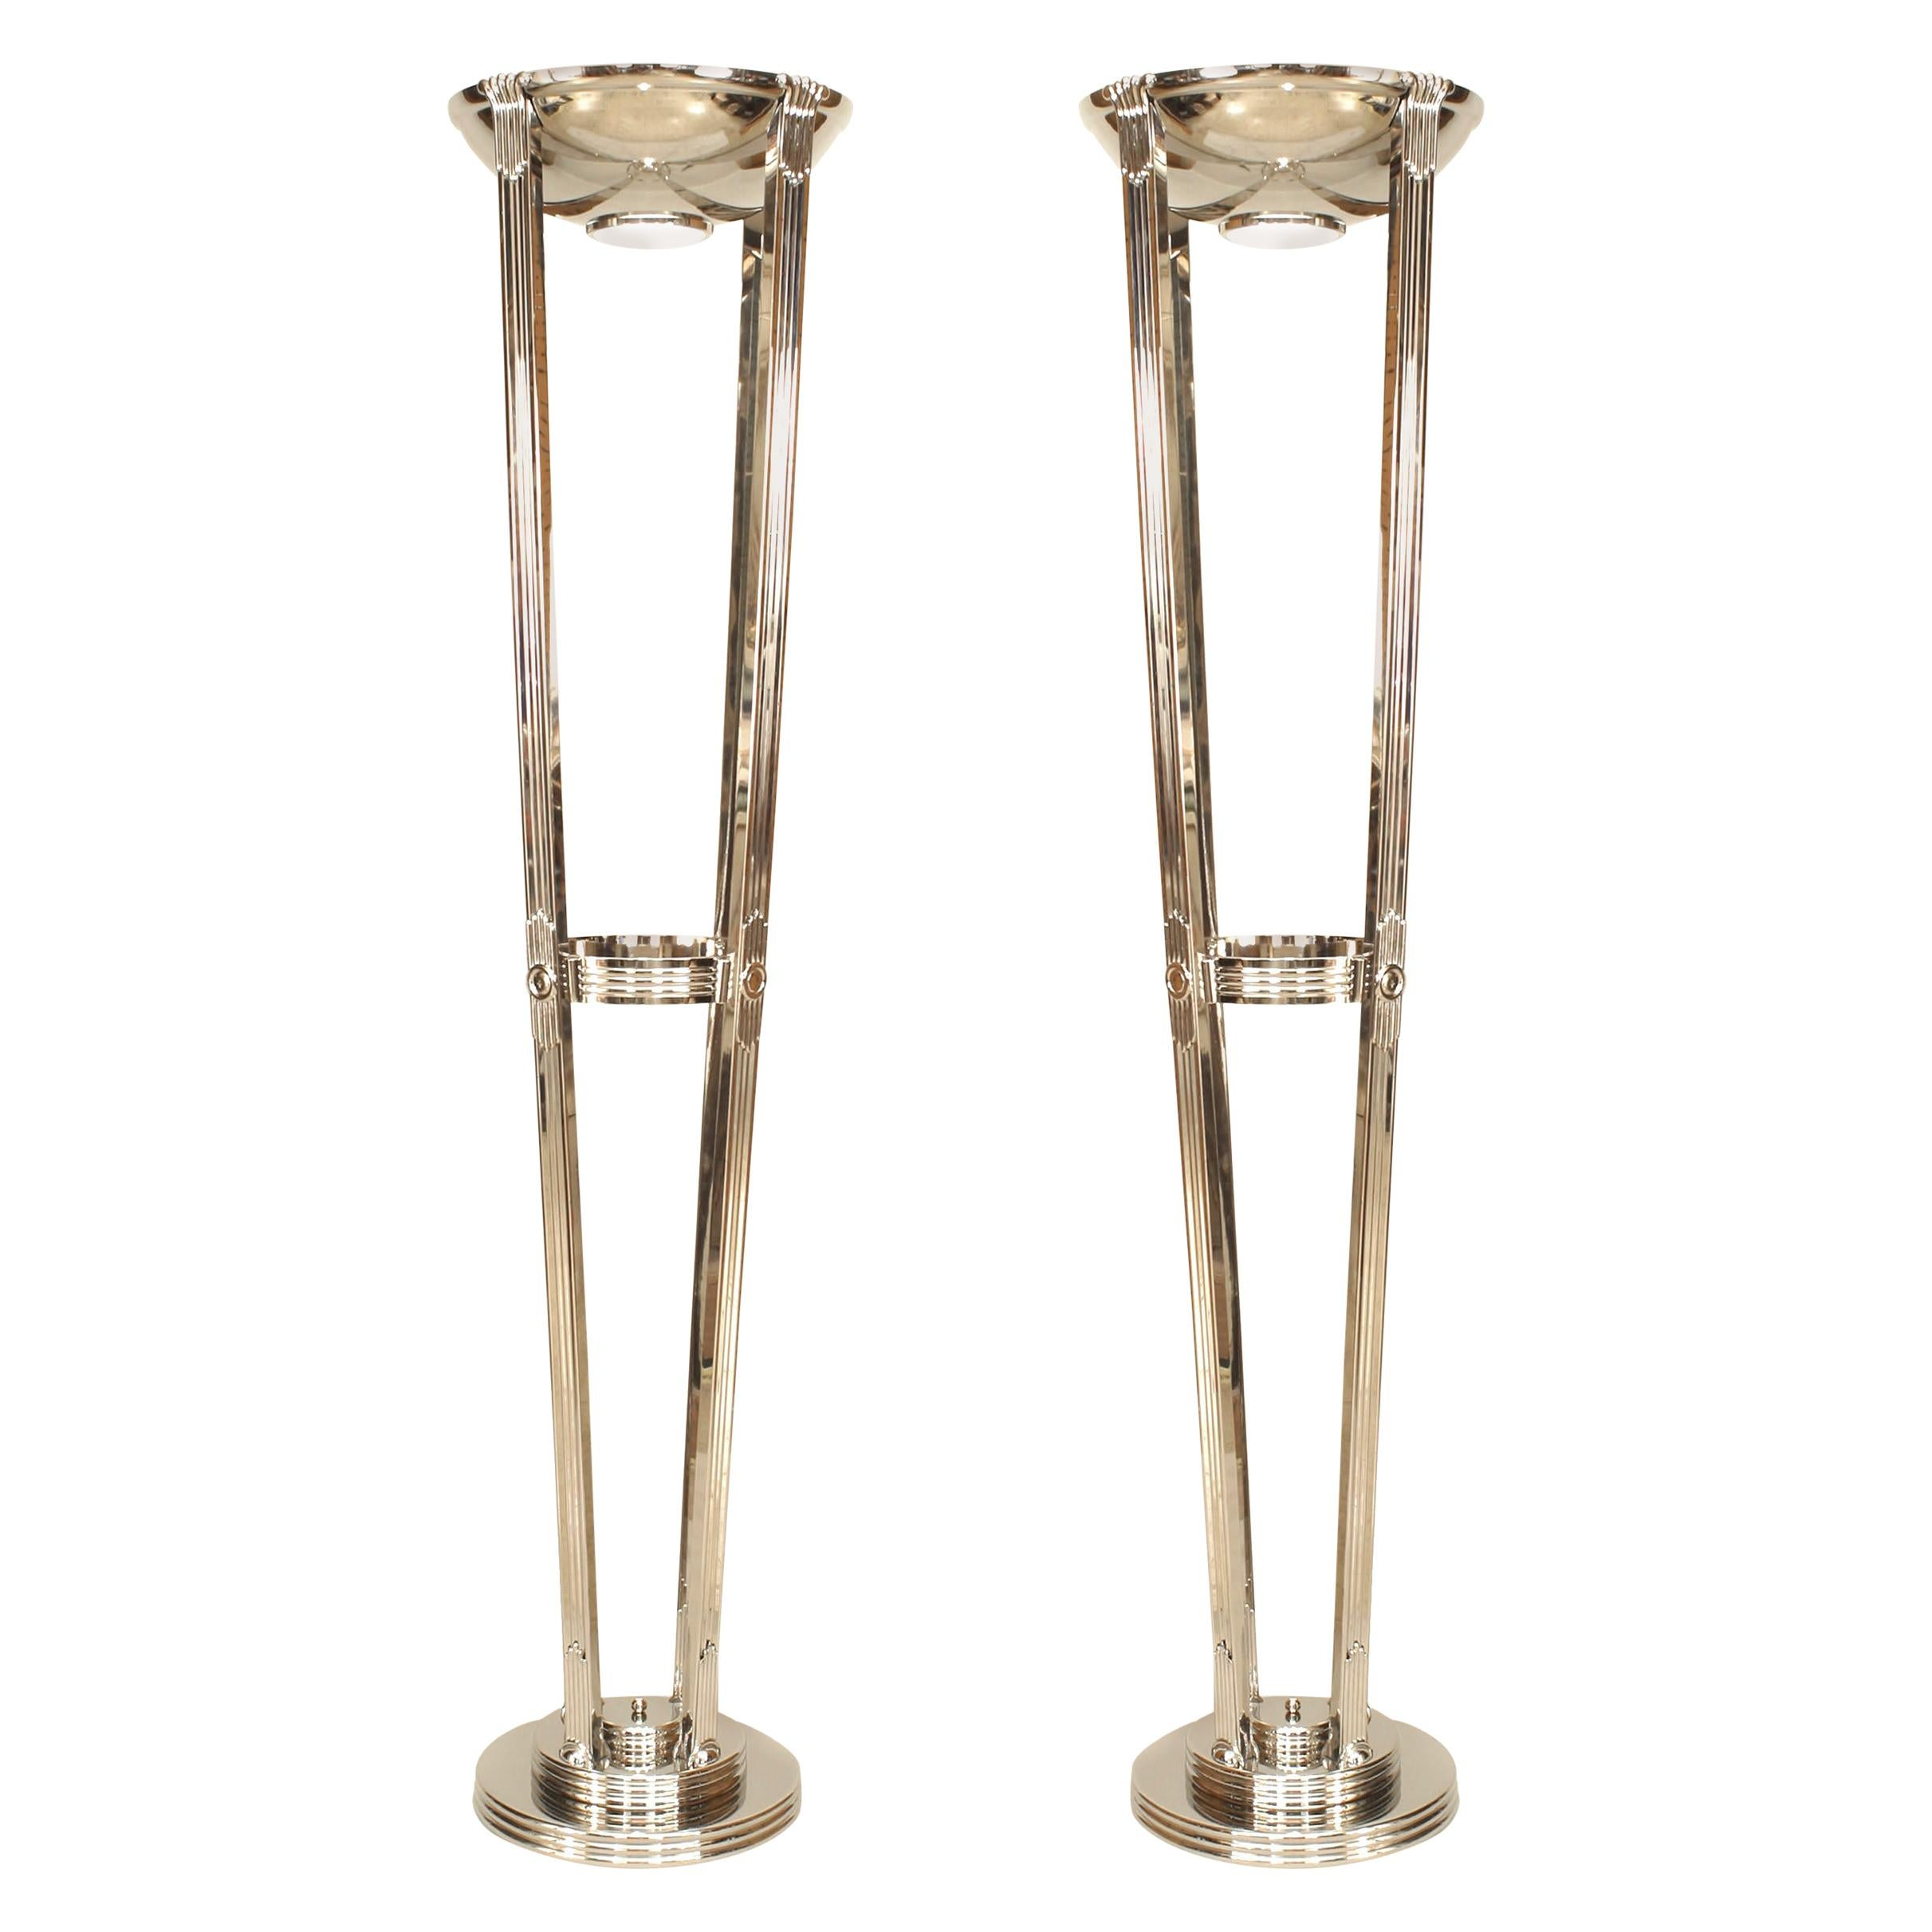 2 Pairs of French Art Deco Style Chrome Floor Lamps